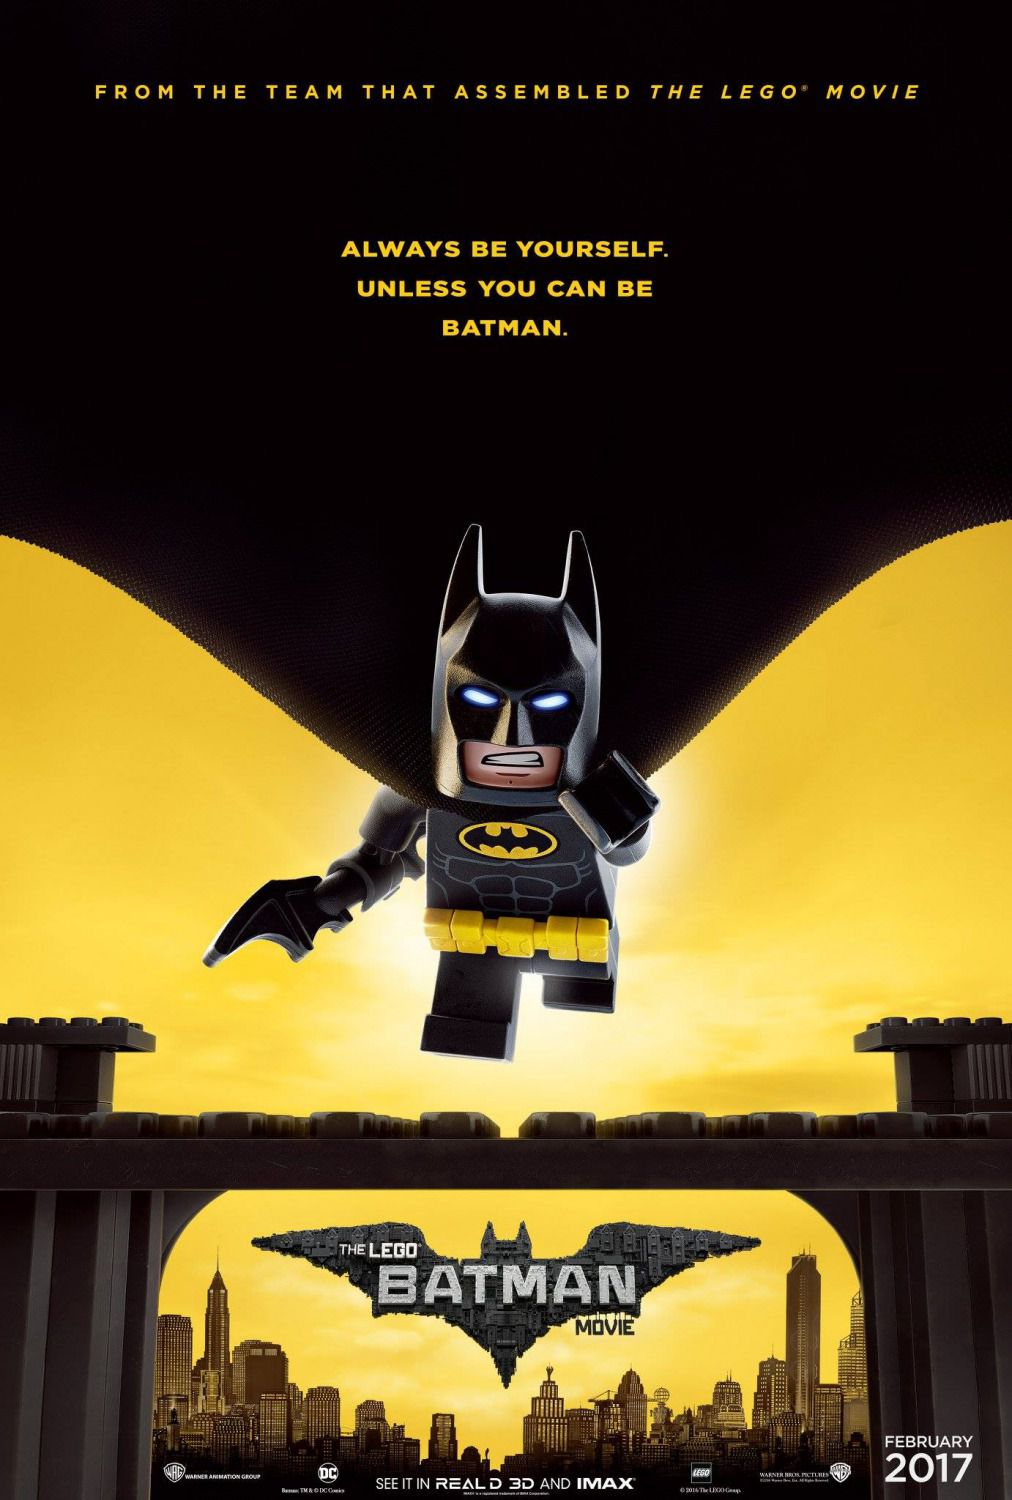 LEGO Batman movie ... from the Team that assembled the LEGO Movie ... always be yourself, unless you can be Batman